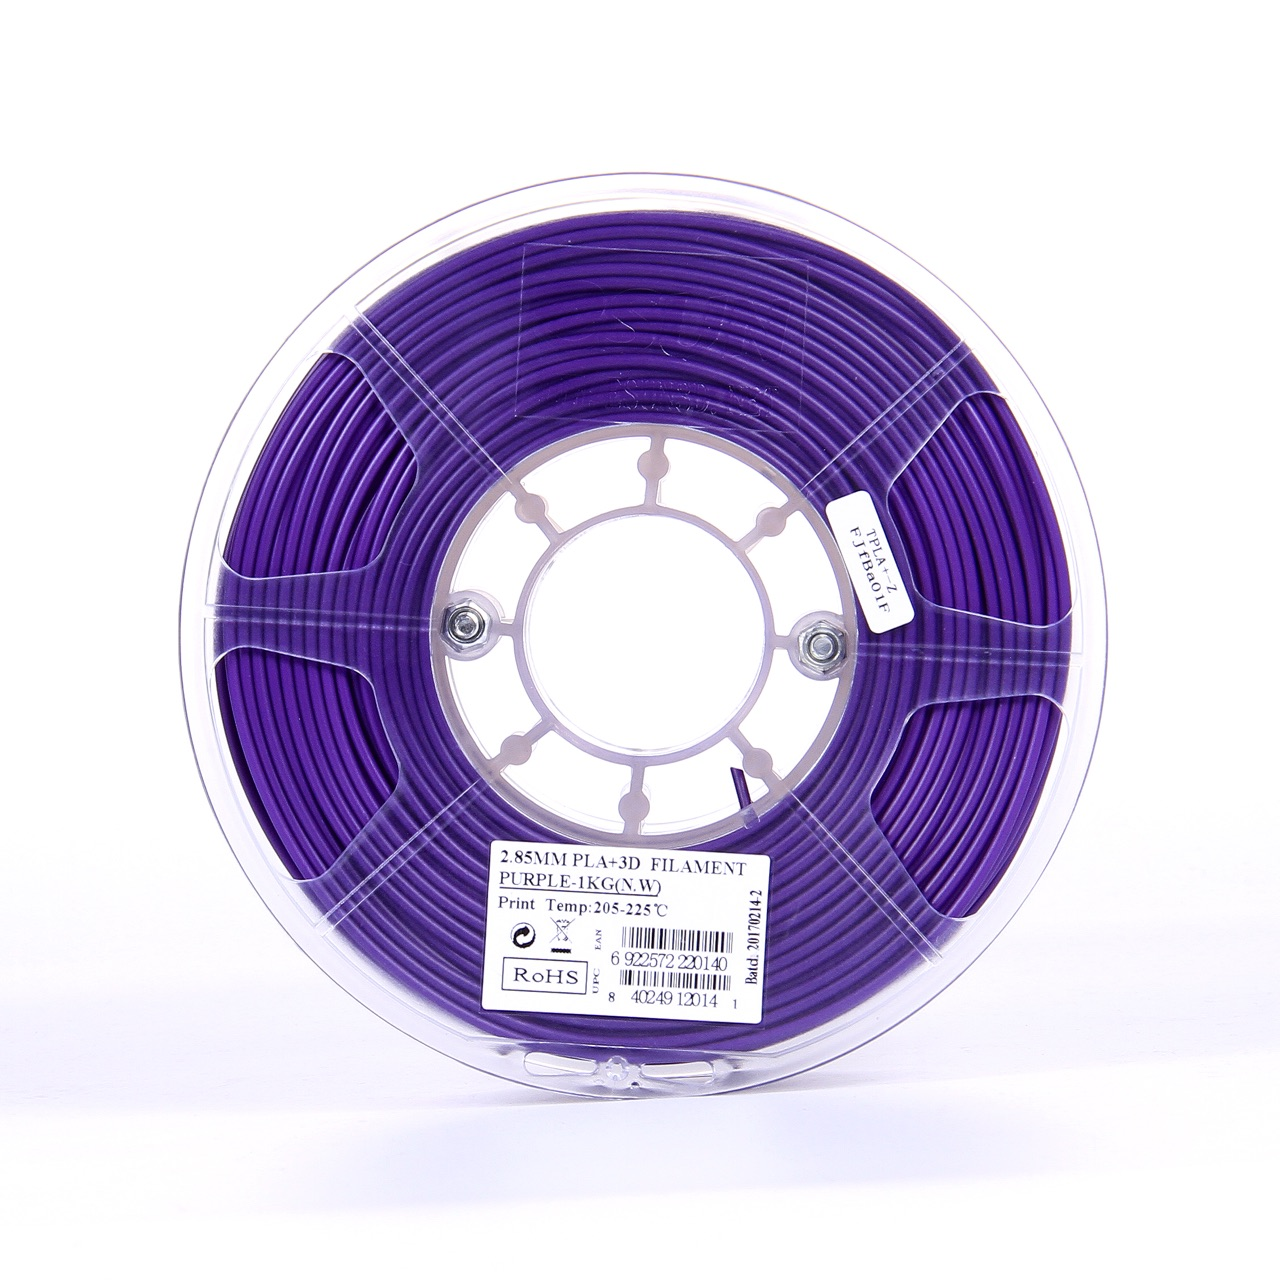 PLA filament, 2.85mm (3.0mm Compatible), Purple, 1kg/spool - MK-PLA300PU